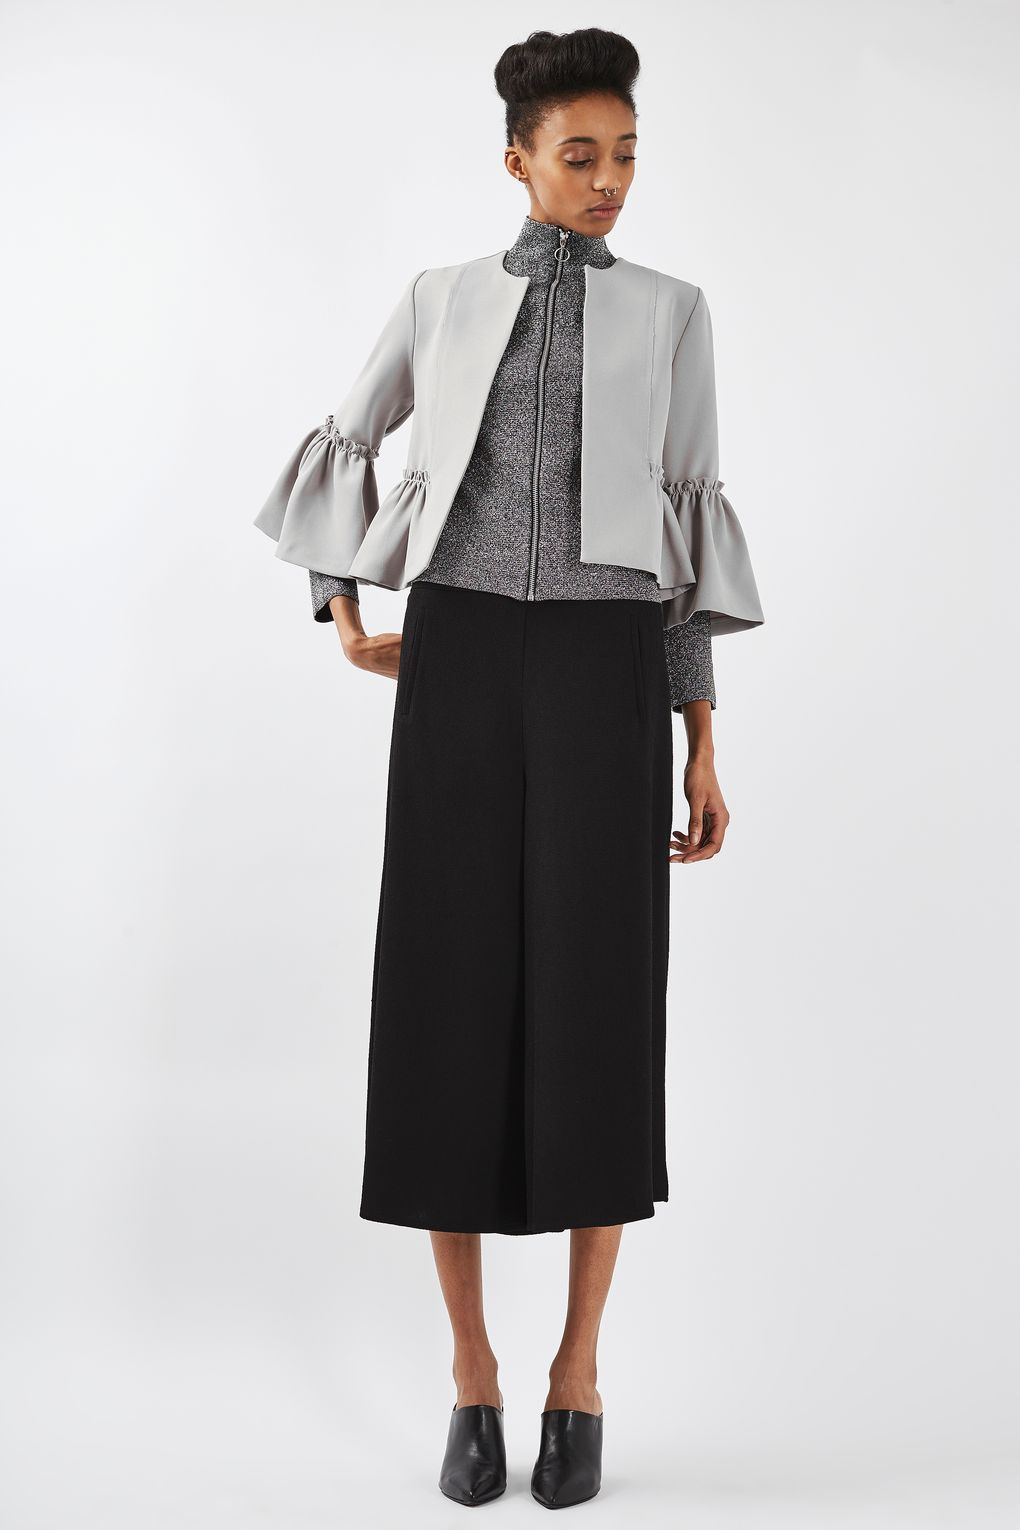 Crop Frill Jacket - Chic work look